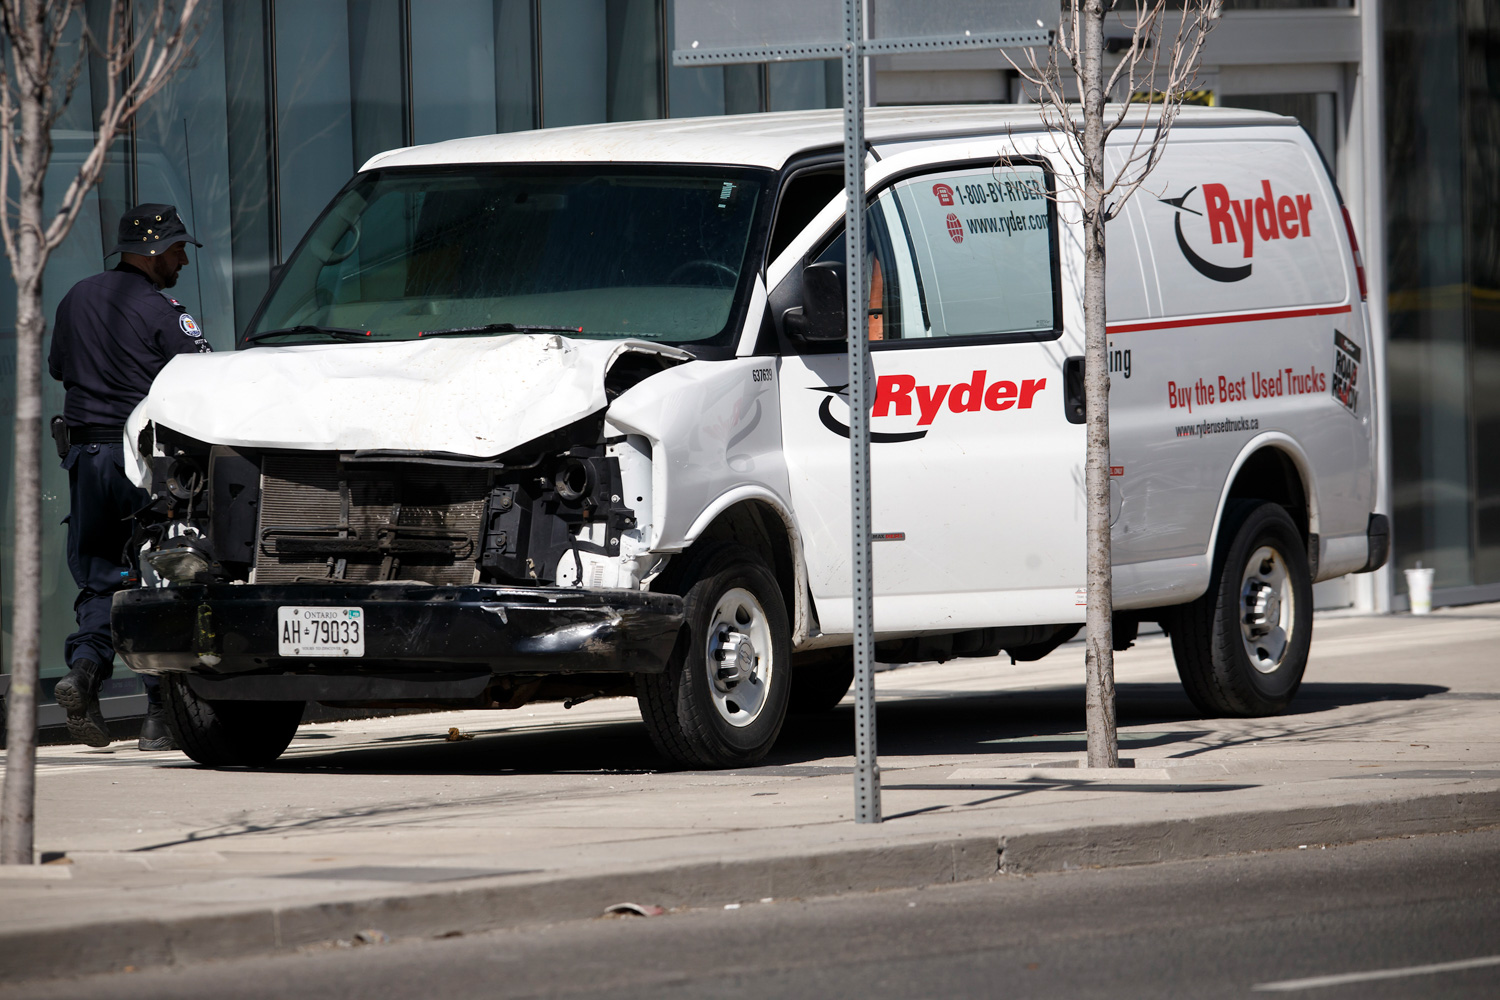 """<div class=""""meta image-caption""""><div class=""""origin-logo origin-image none""""><span>none</span></div><span class=""""caption-text"""">Police inspect a van suspected of being involved in a collision injuring at least eight people at Yonge St. and Finch Ave. on April 23, 2018 in Toronto, Canada (Cole Burston/Getty Images)</span></div>"""